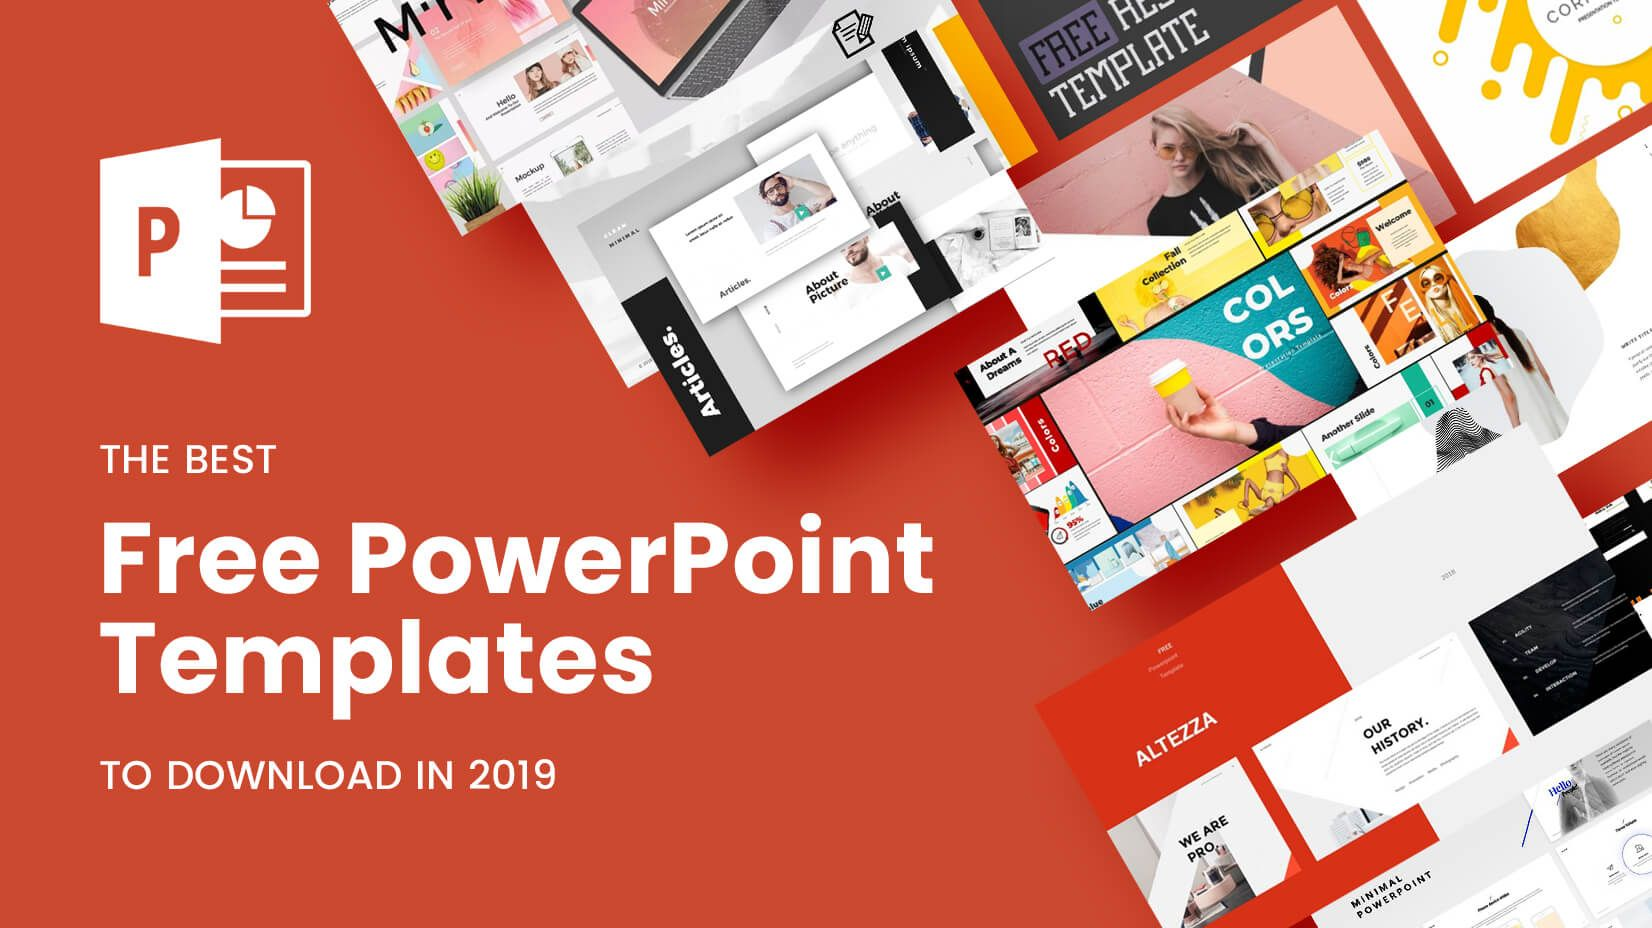 The Best Free Powerpoint Templates To Download In 2019 Graphicmama Blog In 2020 Free Powerpoint Templates Download Powerpoint Template Free Free Powerpoint Presentations